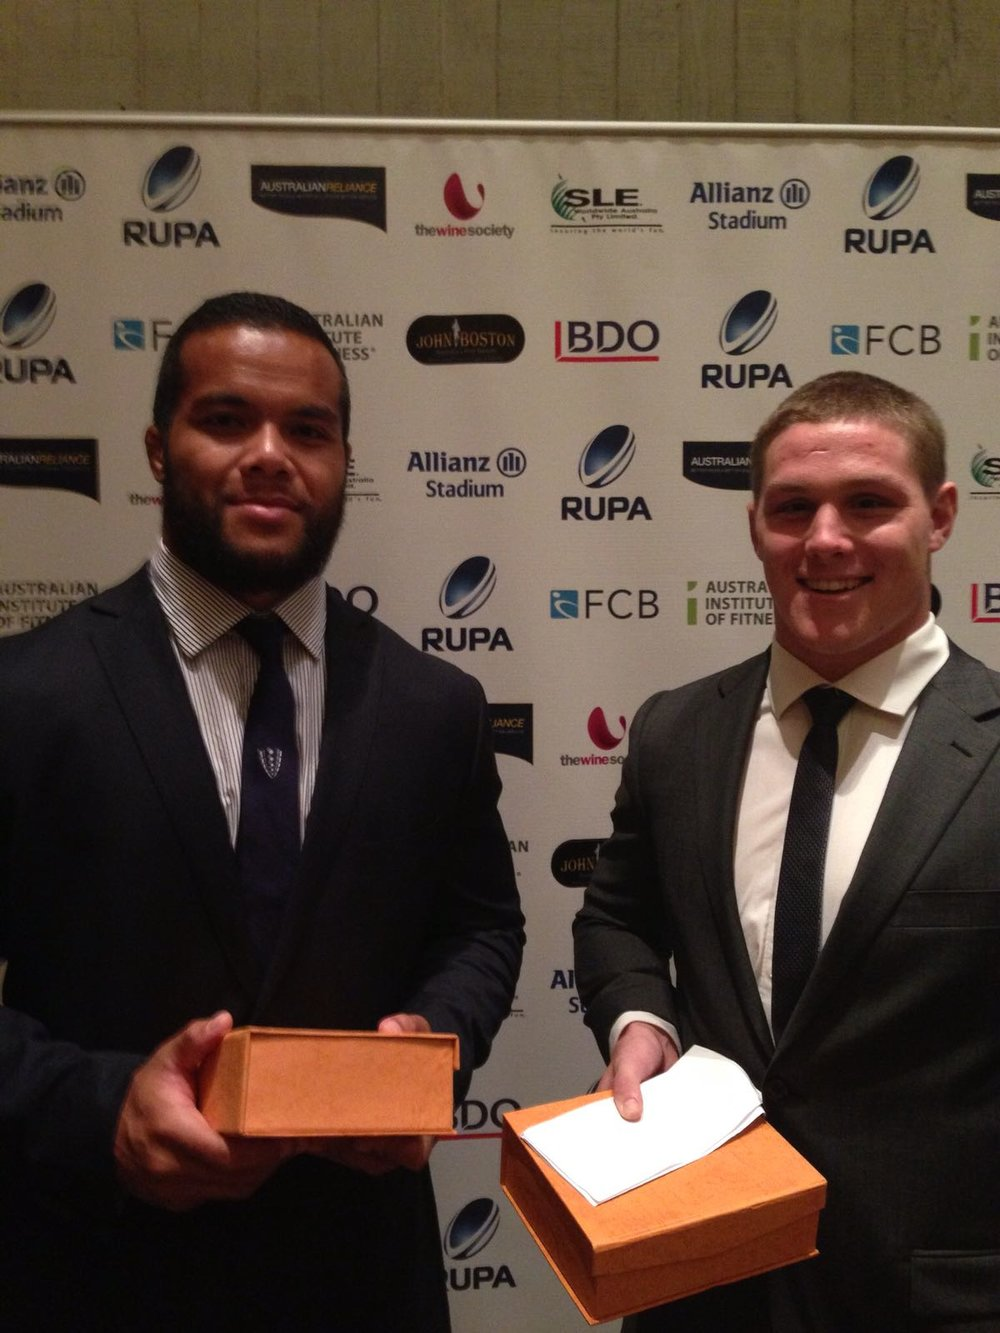 Founder Eddie Aholelei receiving the RUPA award for Service to the Community alongside Australian Wallabies captain Michael Hooper